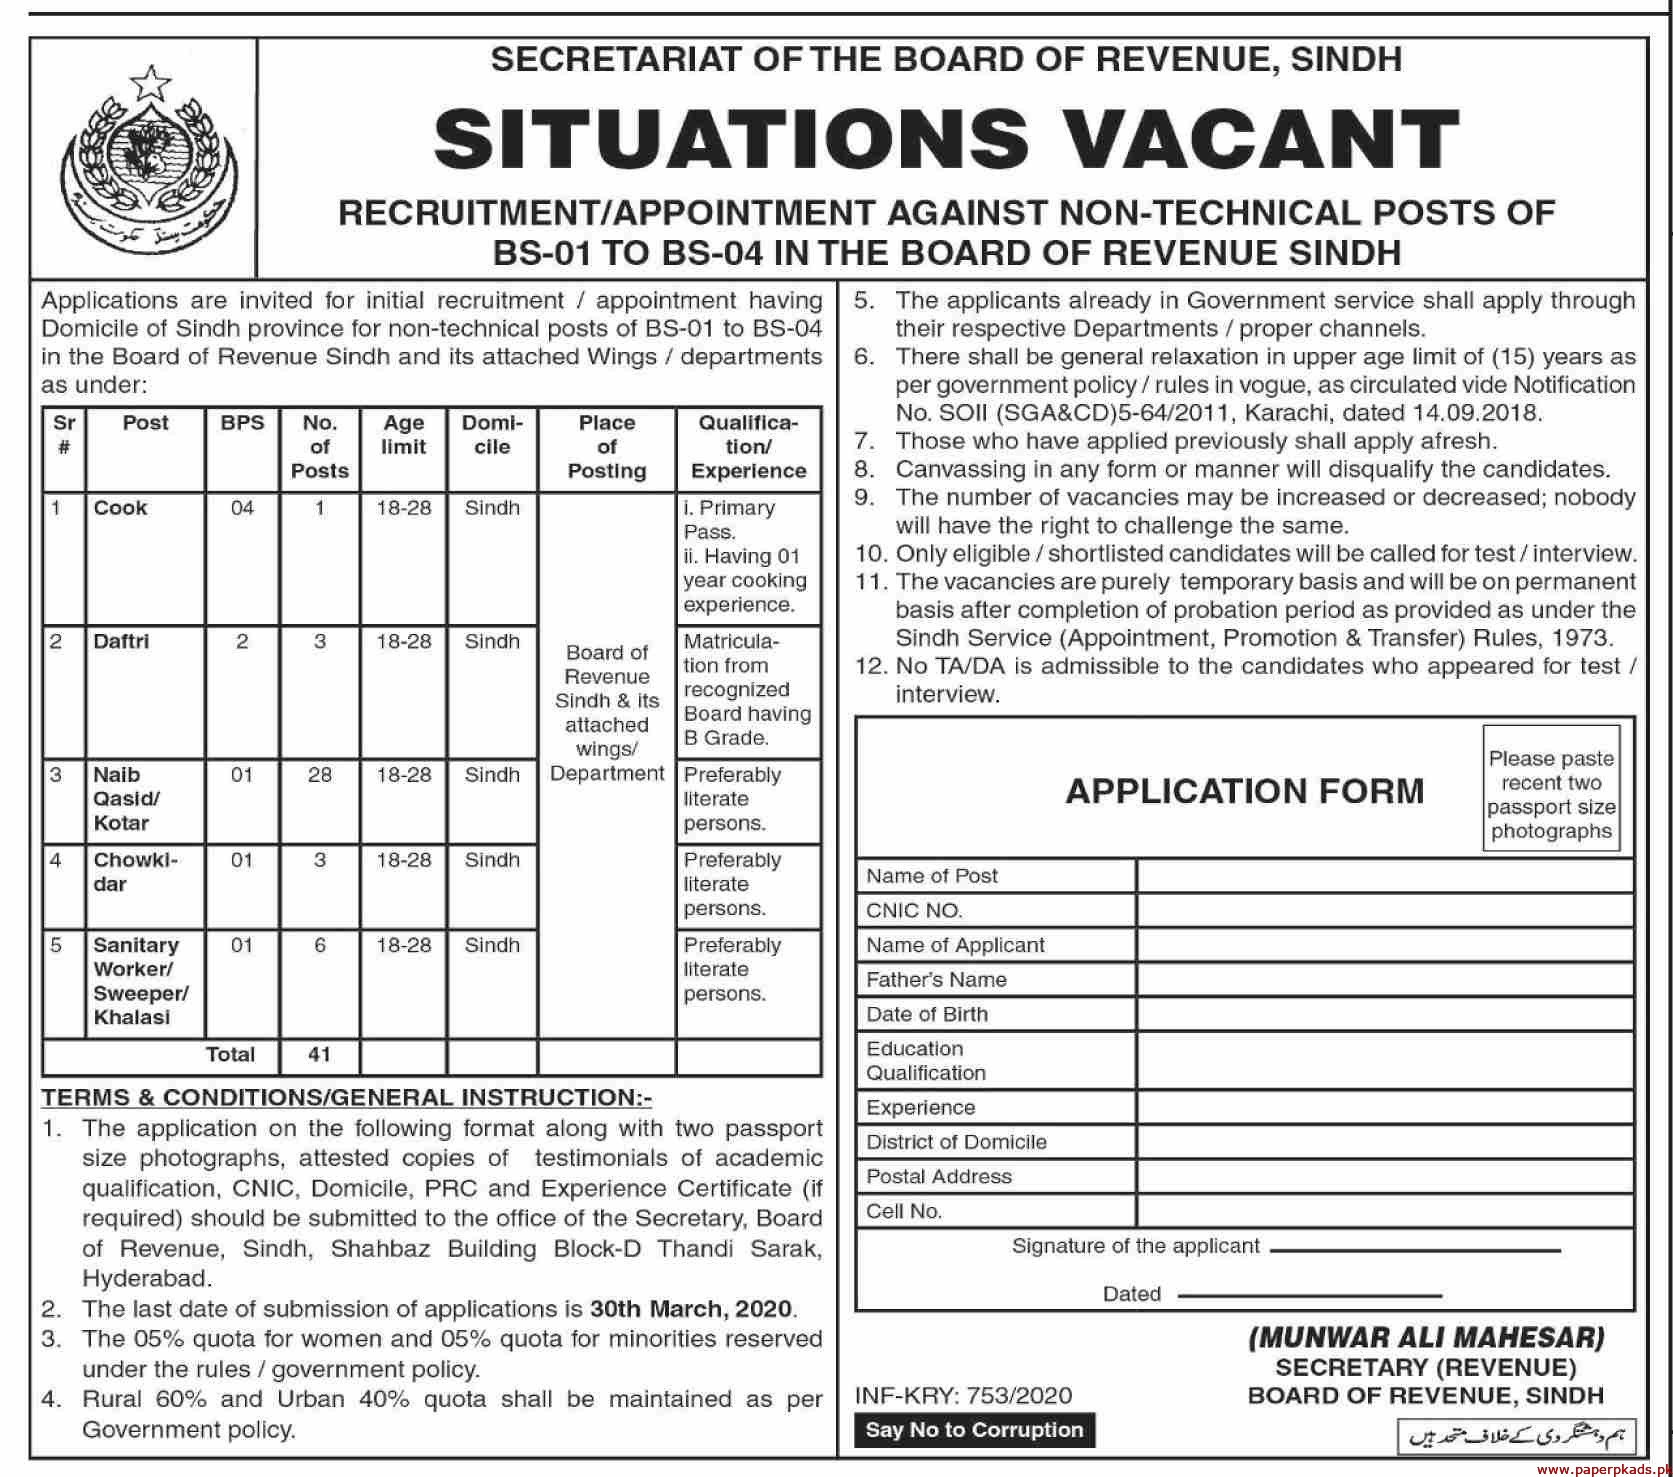 Secretariat of the Board of Revenue Sindh Jobs 2020 Latest